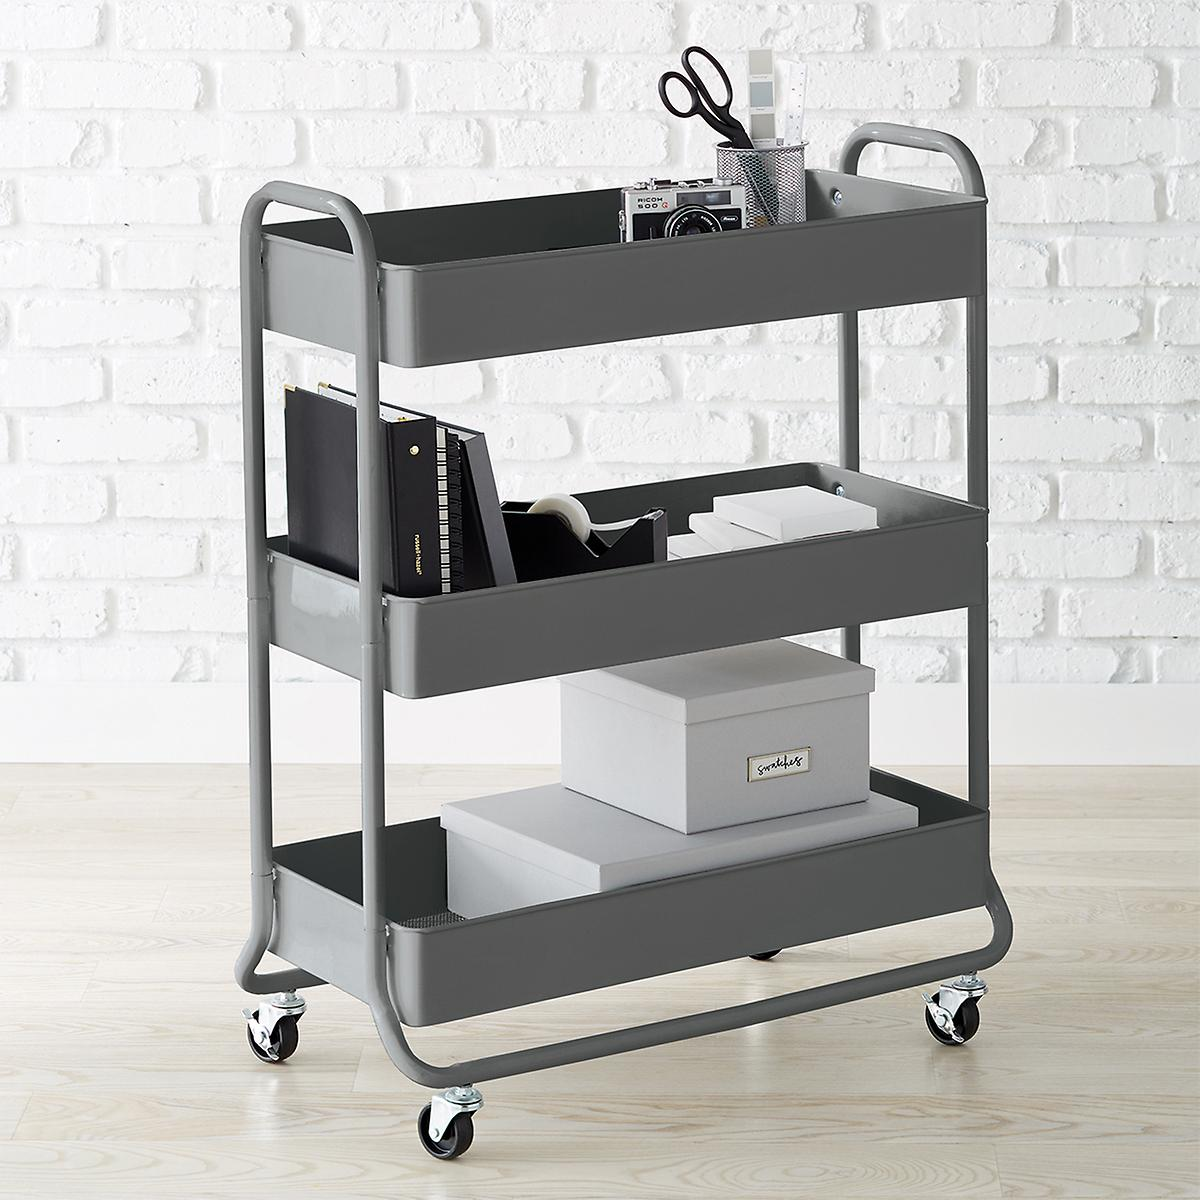 Large Dark Grey 3 Tier Rolling Cart